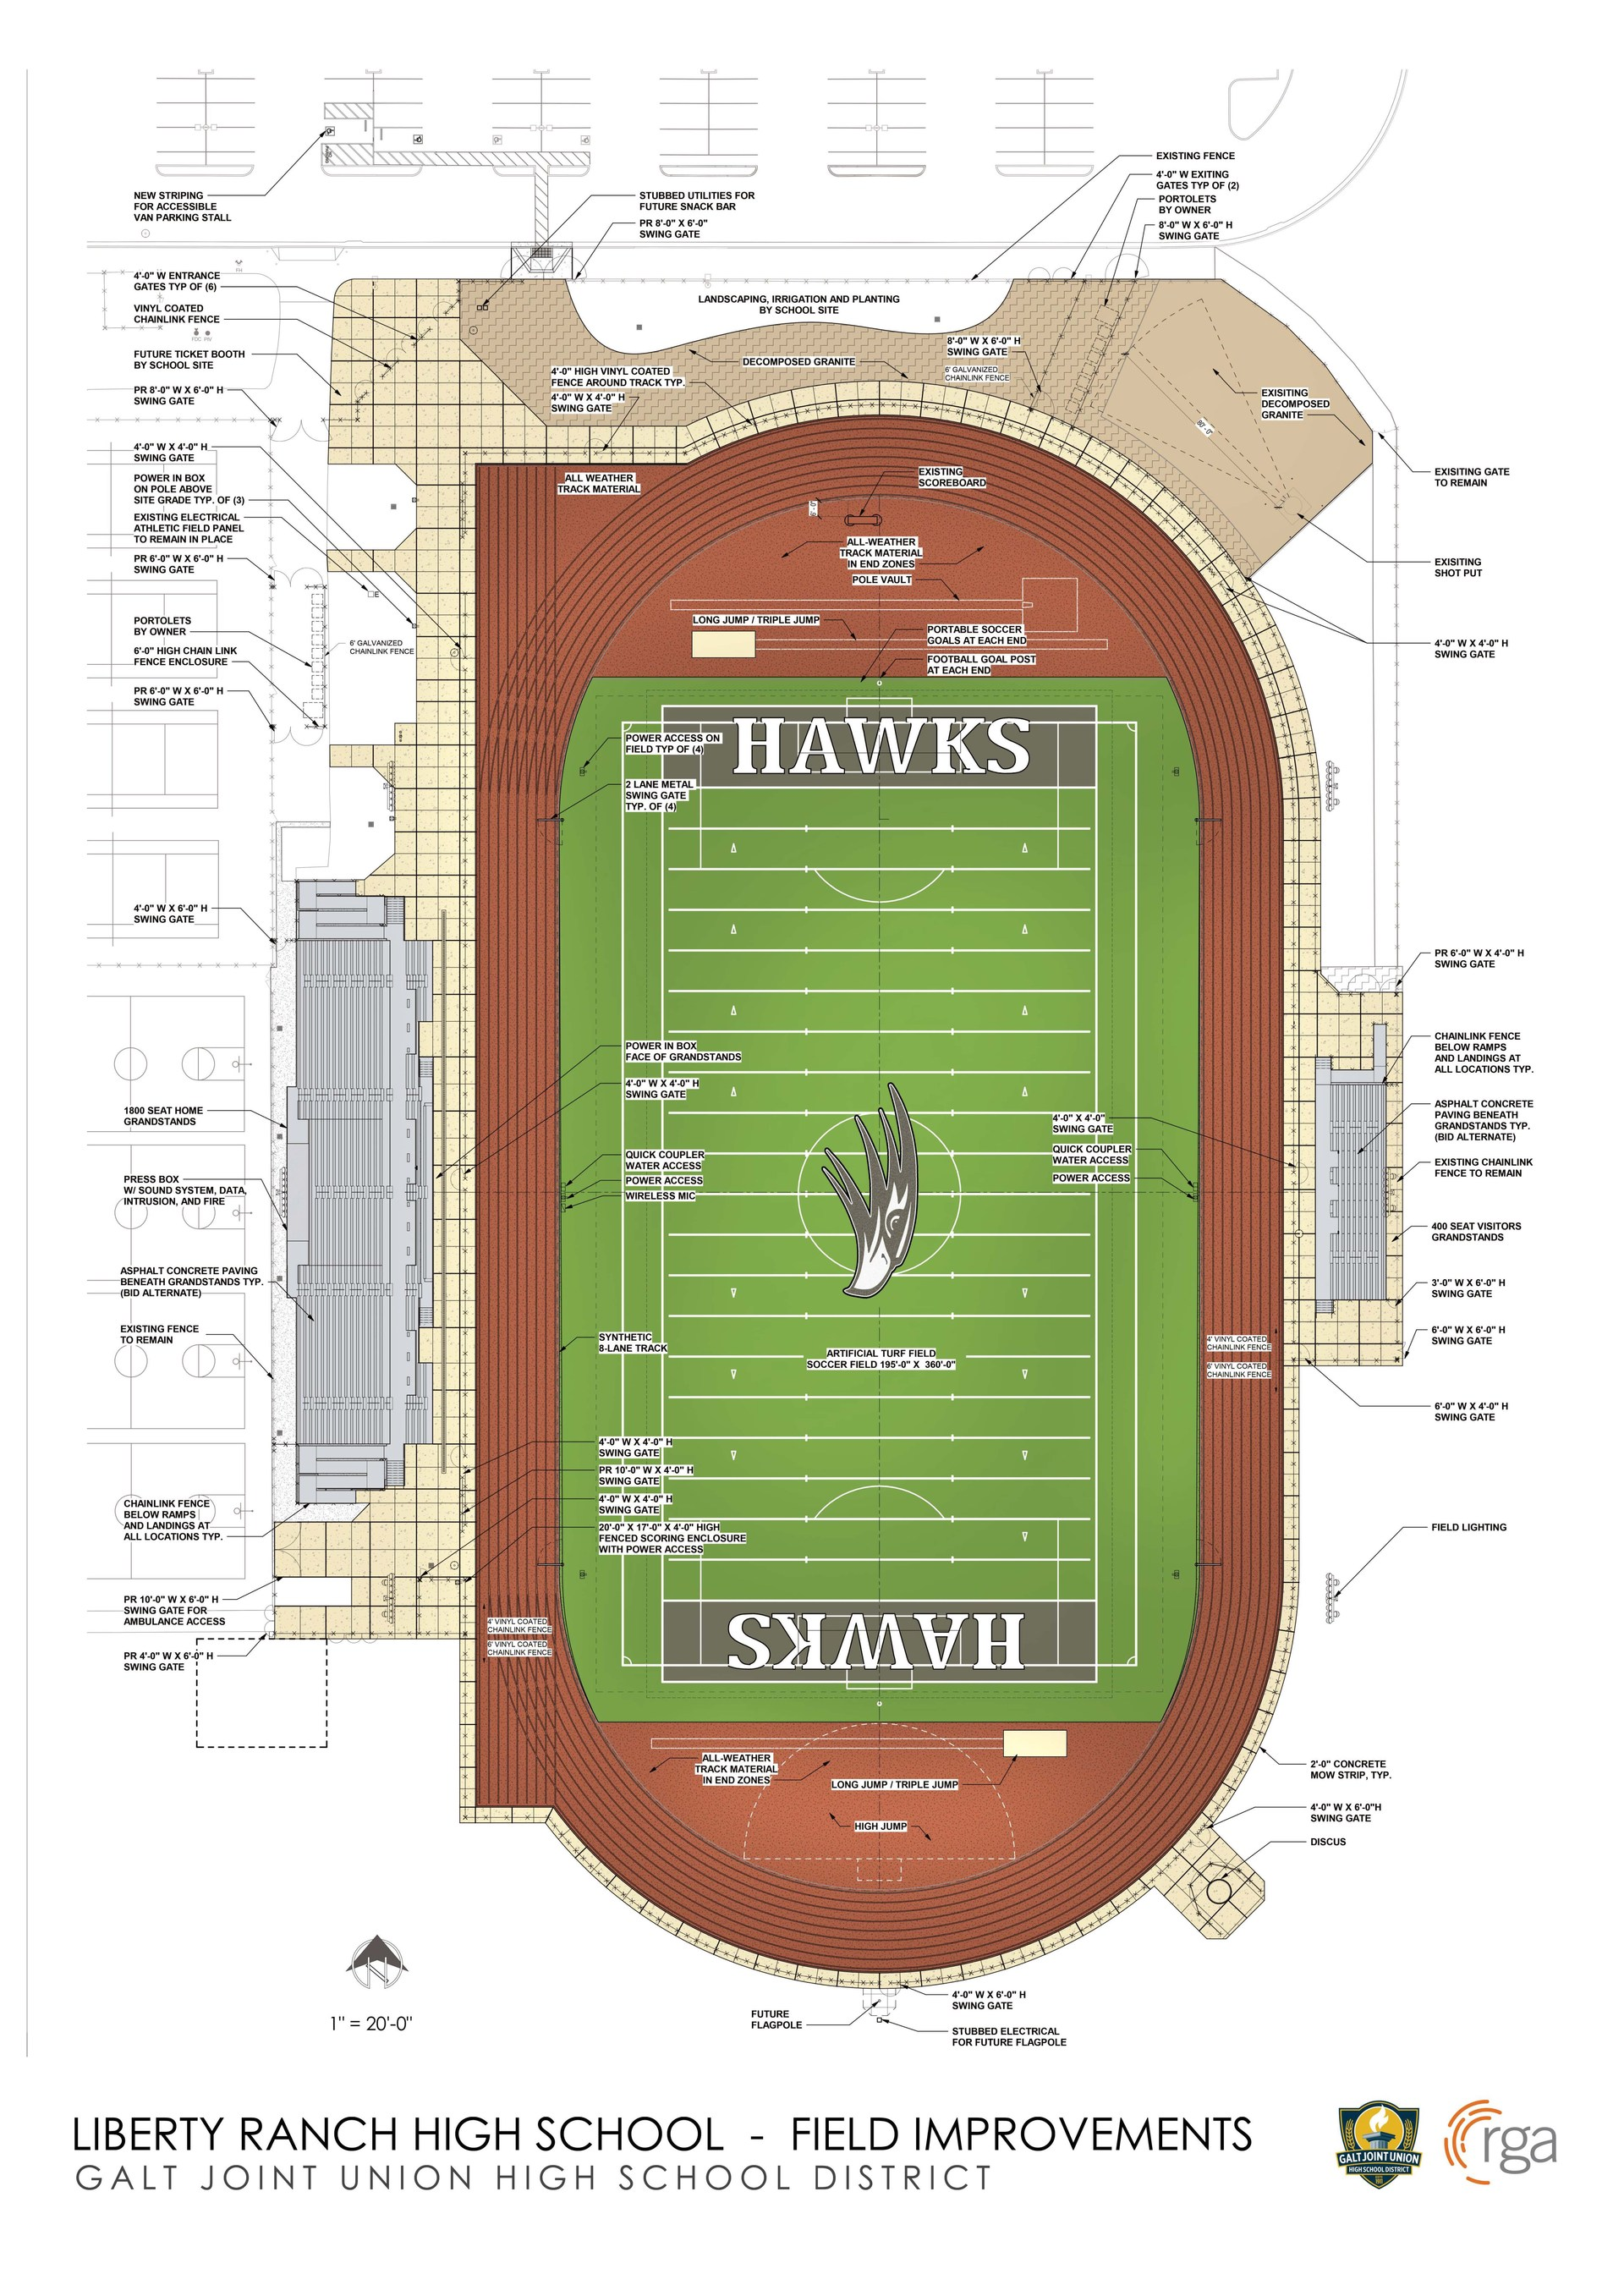 LRHS Field Improvement Rendering